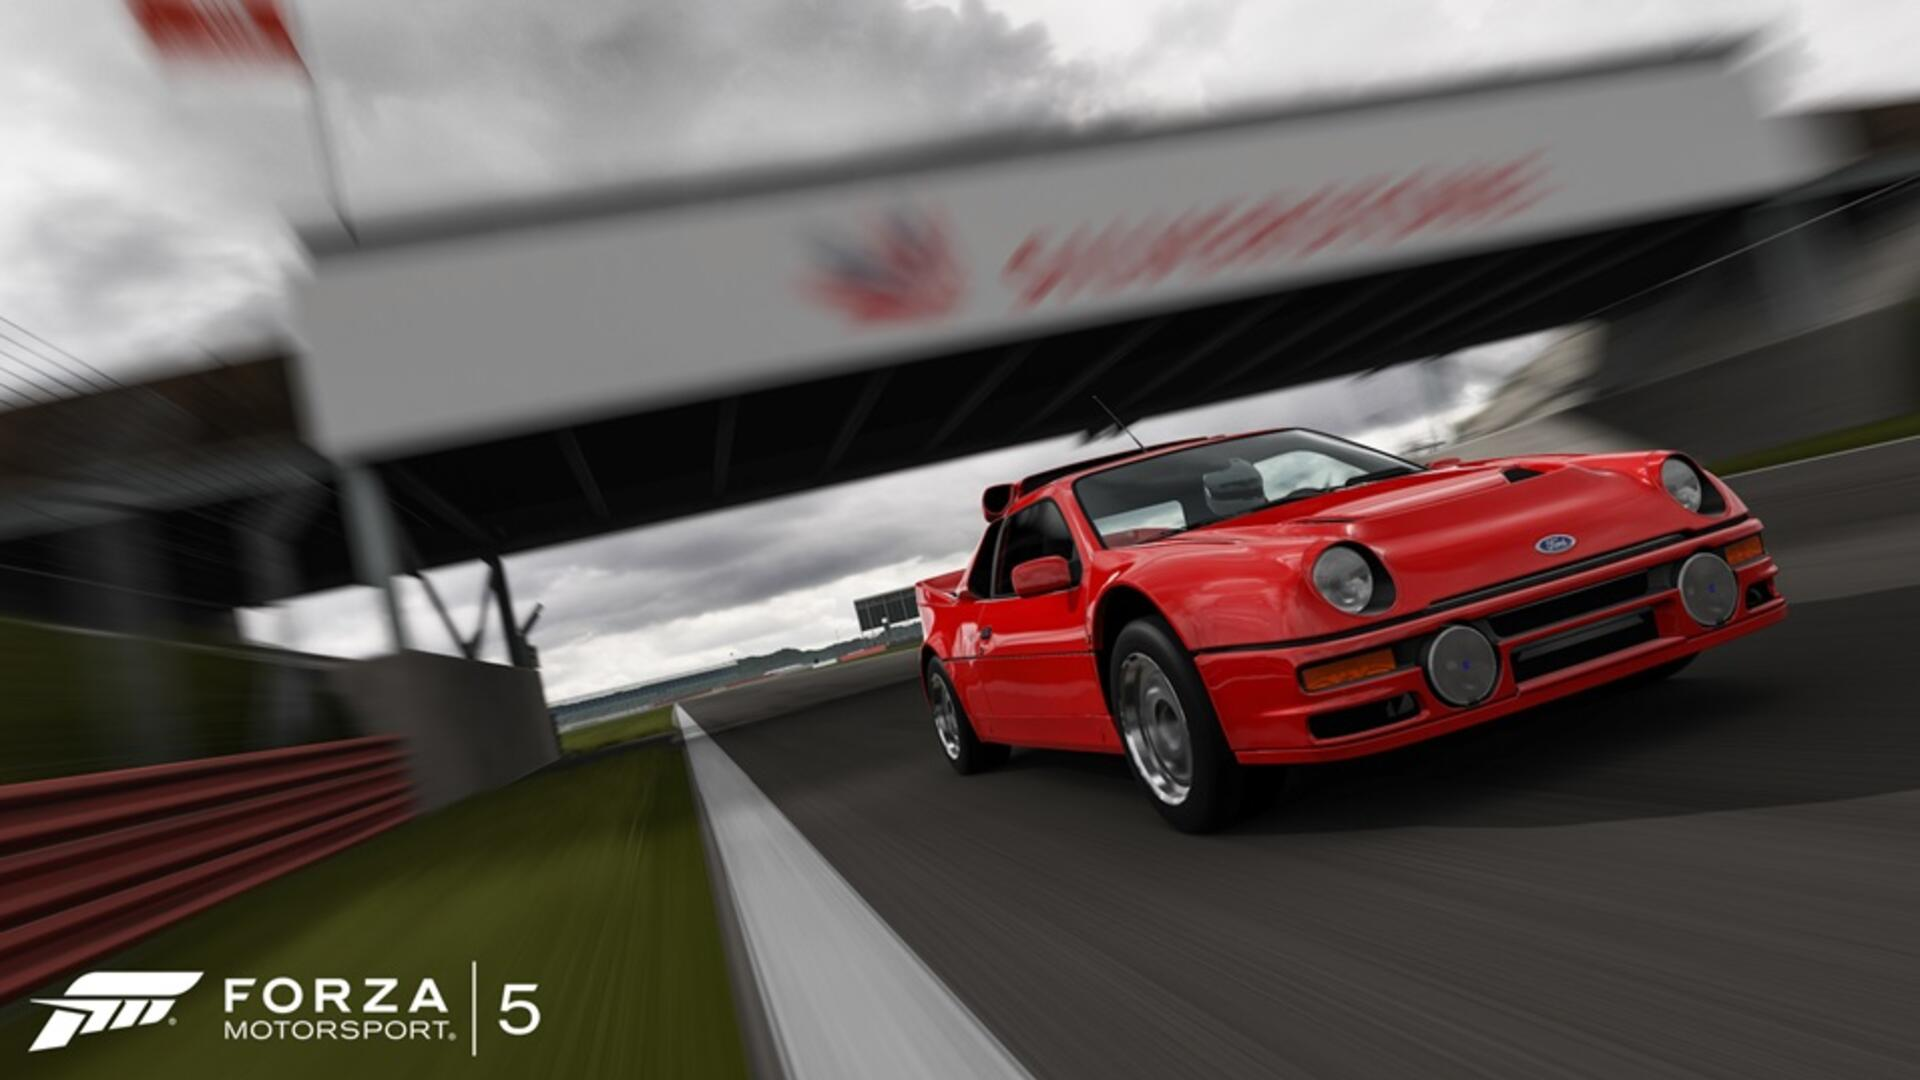 Forza 5 Driving Guide, Assists Walkthrough, Achievements and Car